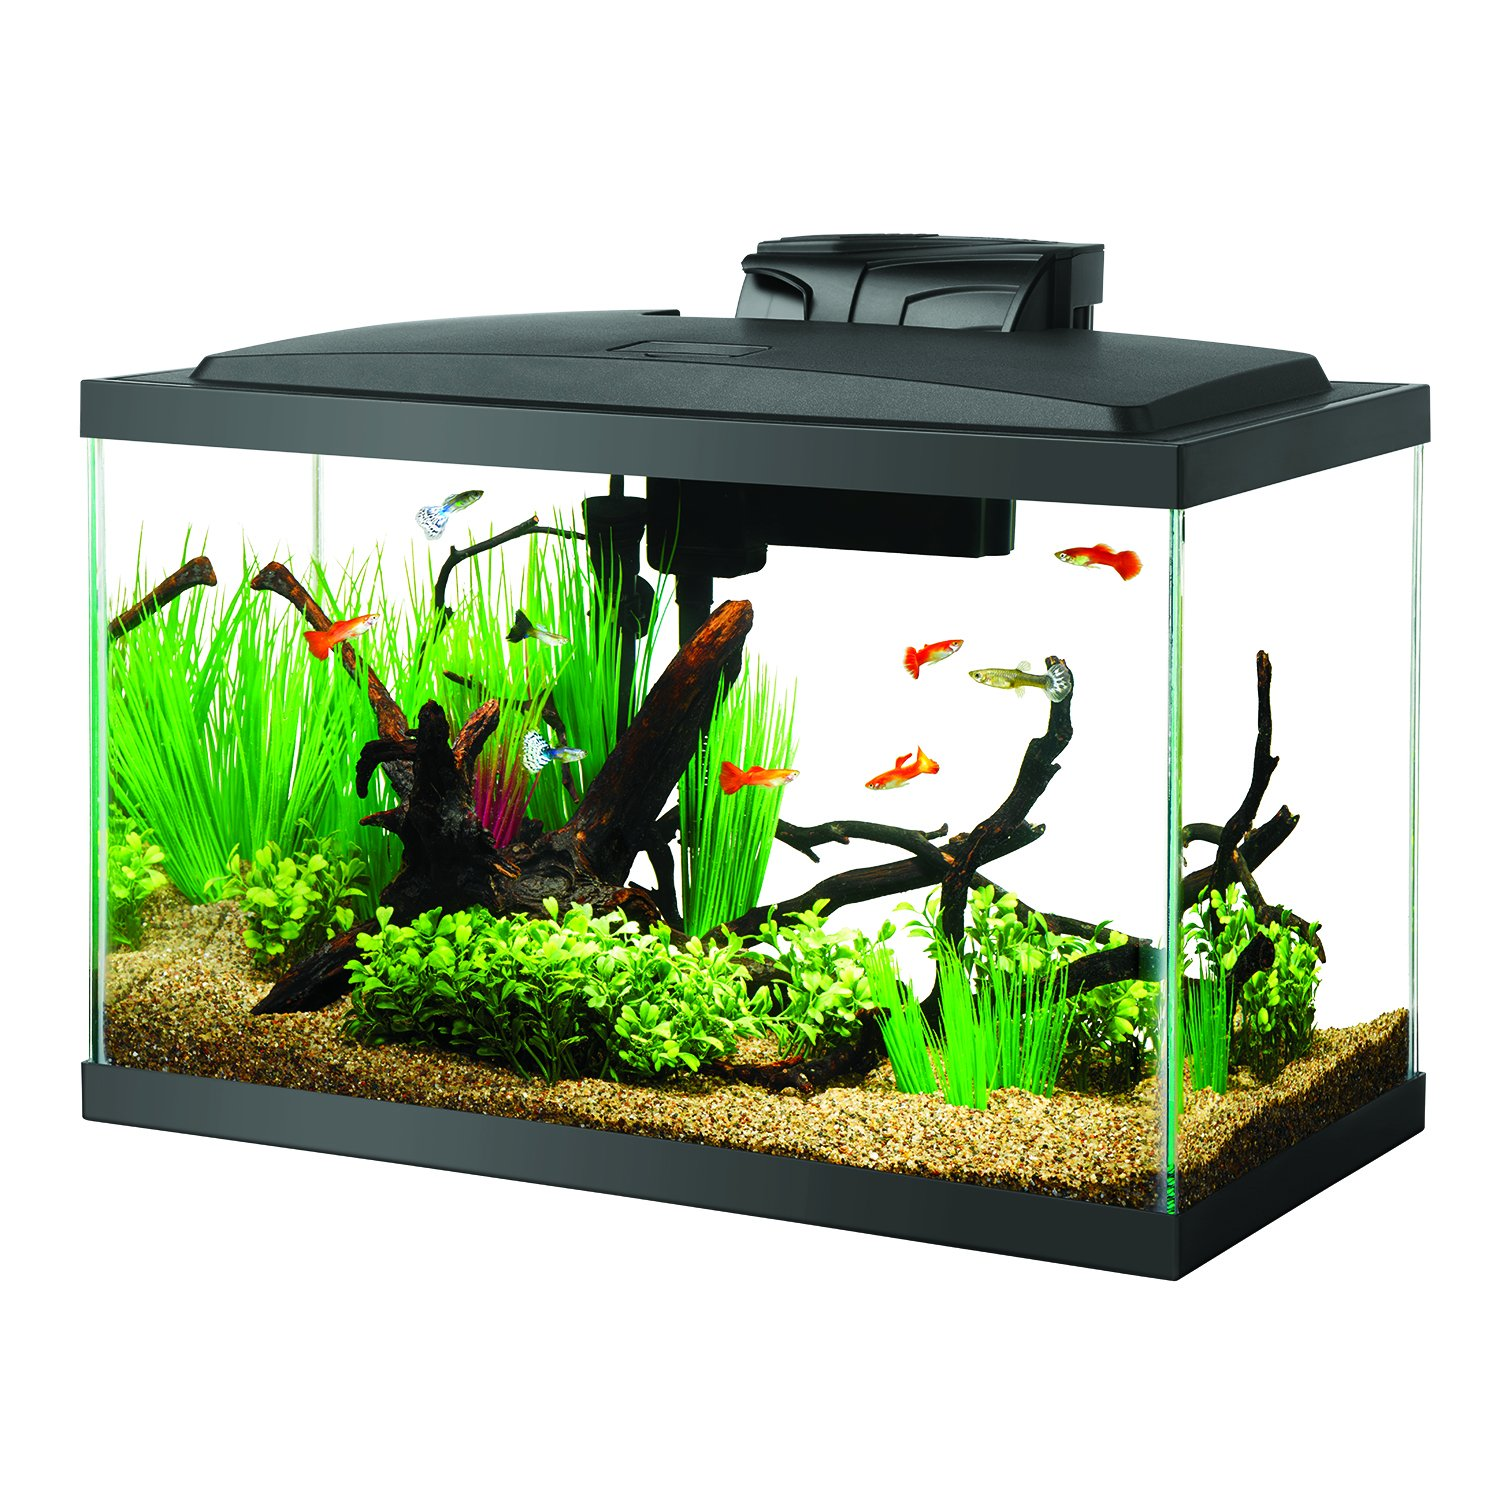 Aquarium fish tank starter kit - Amazon Com Aqueon Fish Aquarium Starter Kit Led 10 Gallon Pet Supplies